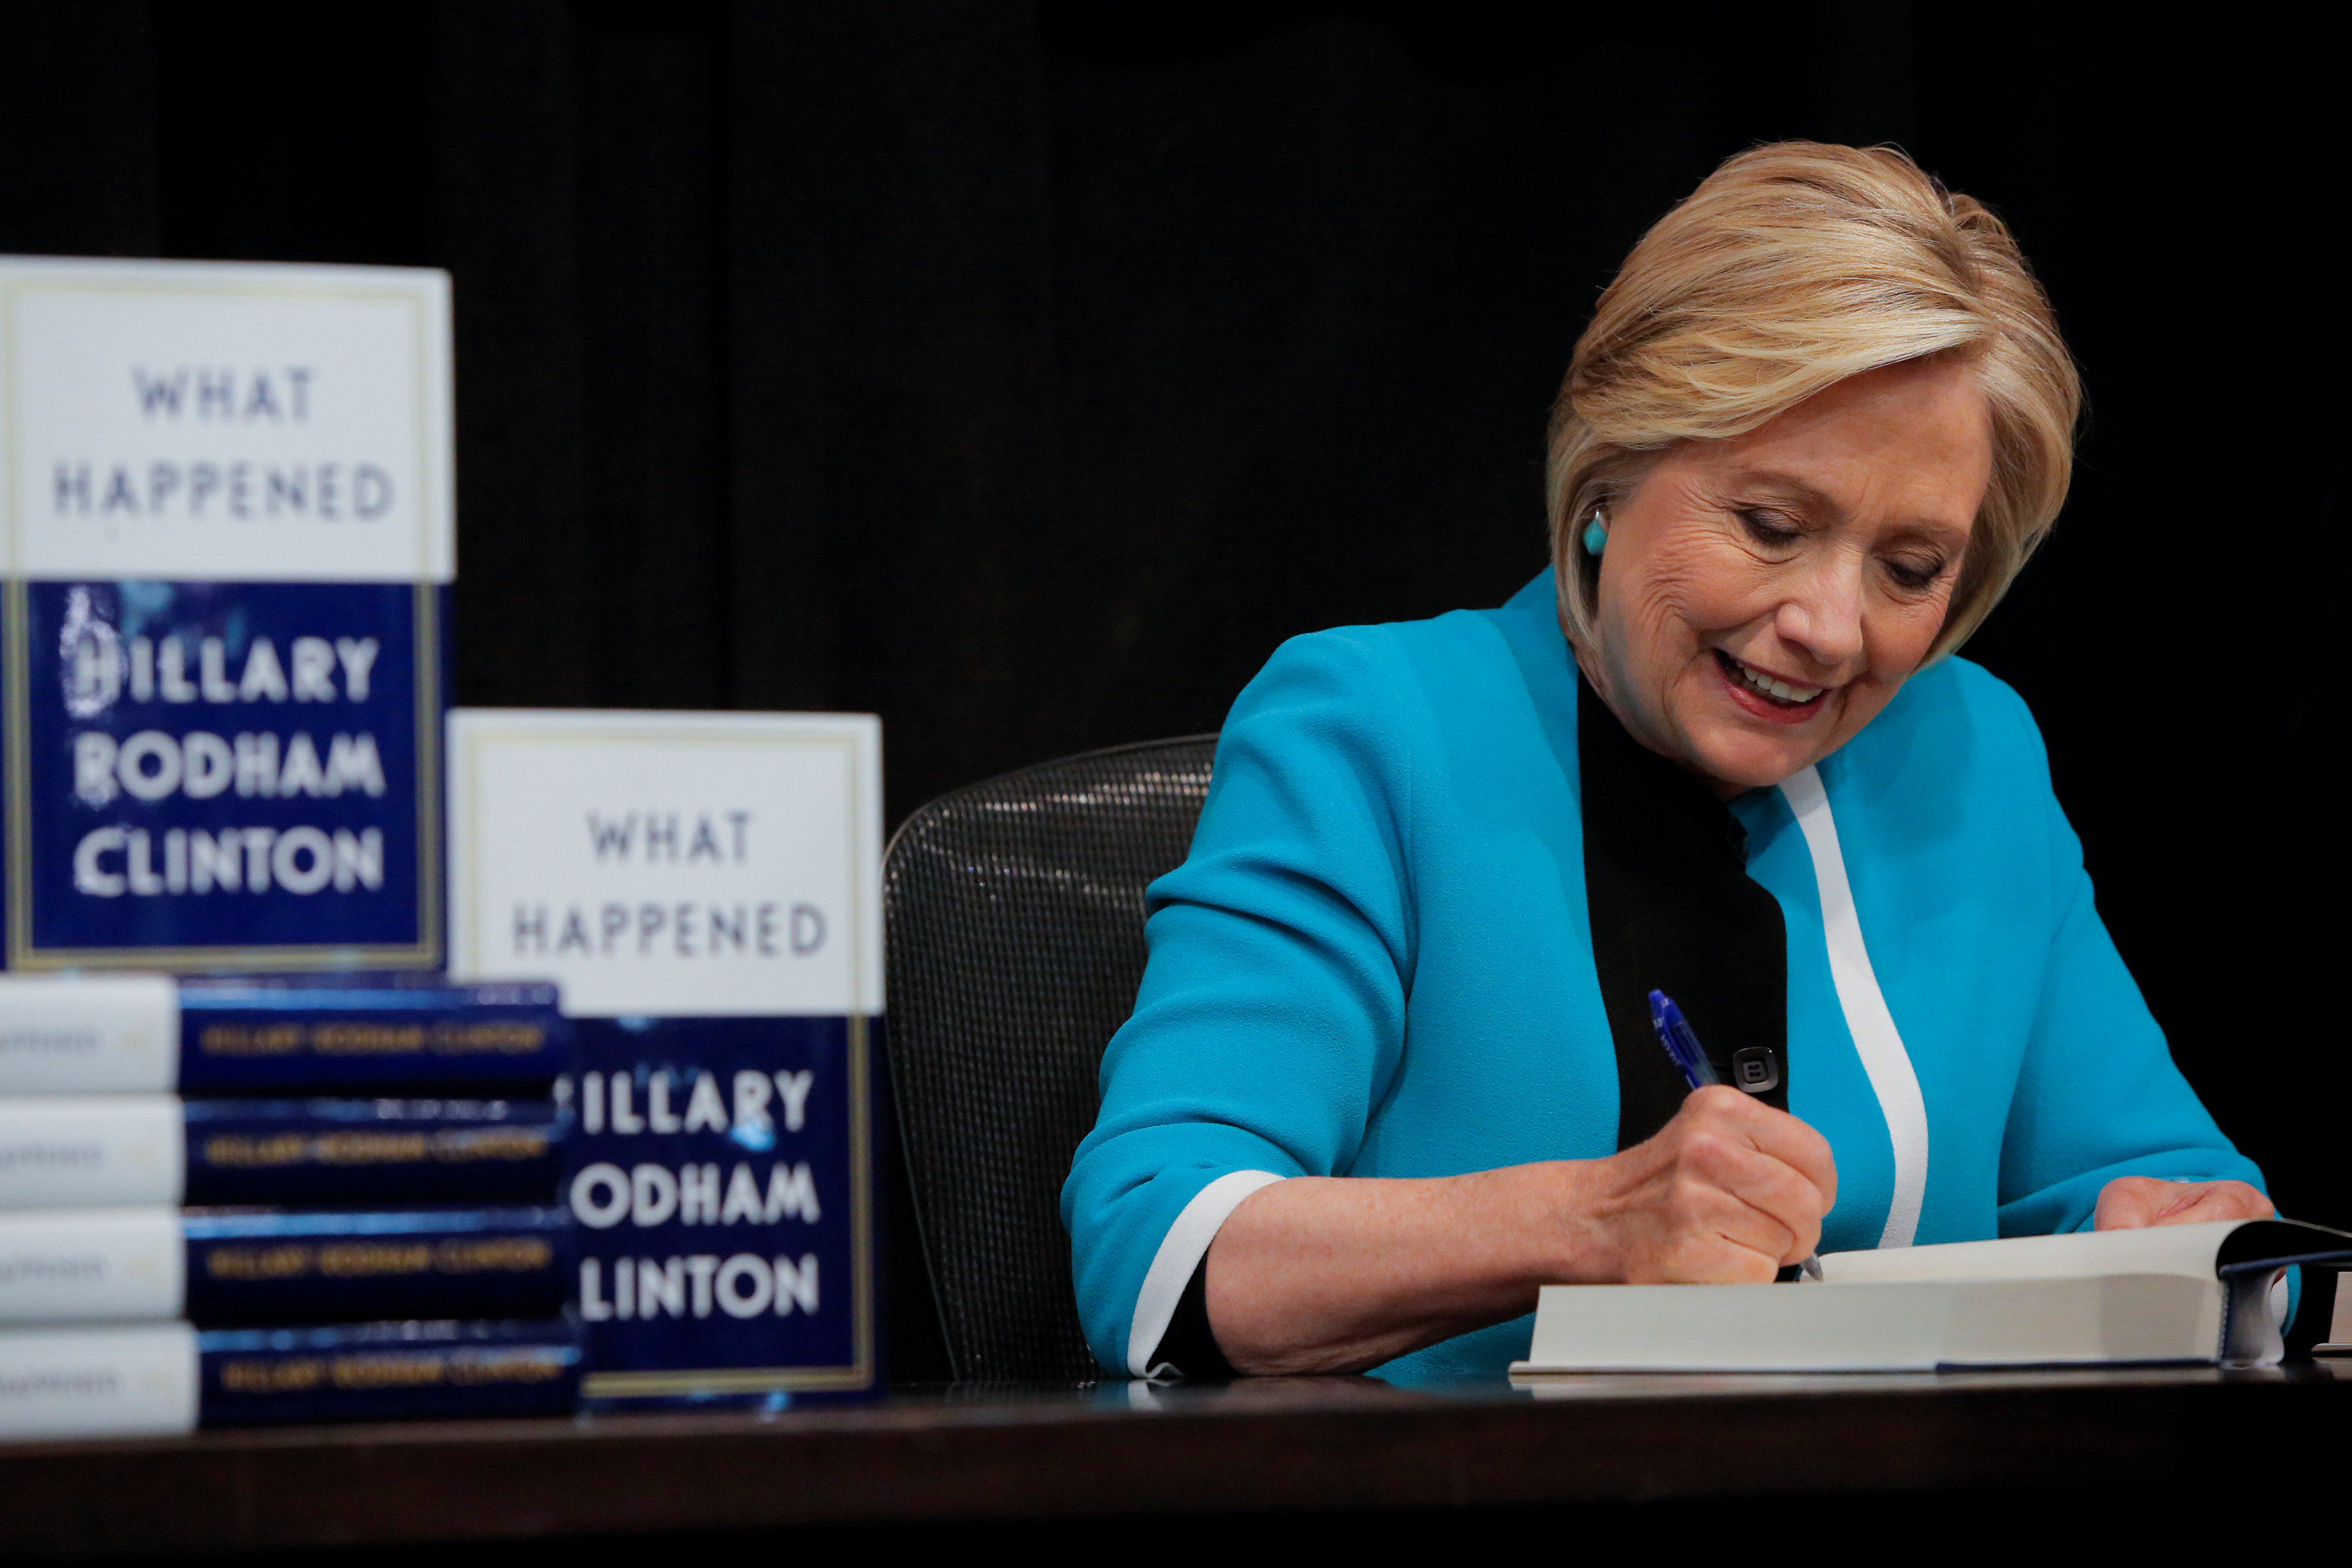 Former Secretary of State Hillary Clinton signs a copy of her new book 'What happened' at Barnes & Noble bookstore in Manhattan, New York City, U.S., September 12, 2017.